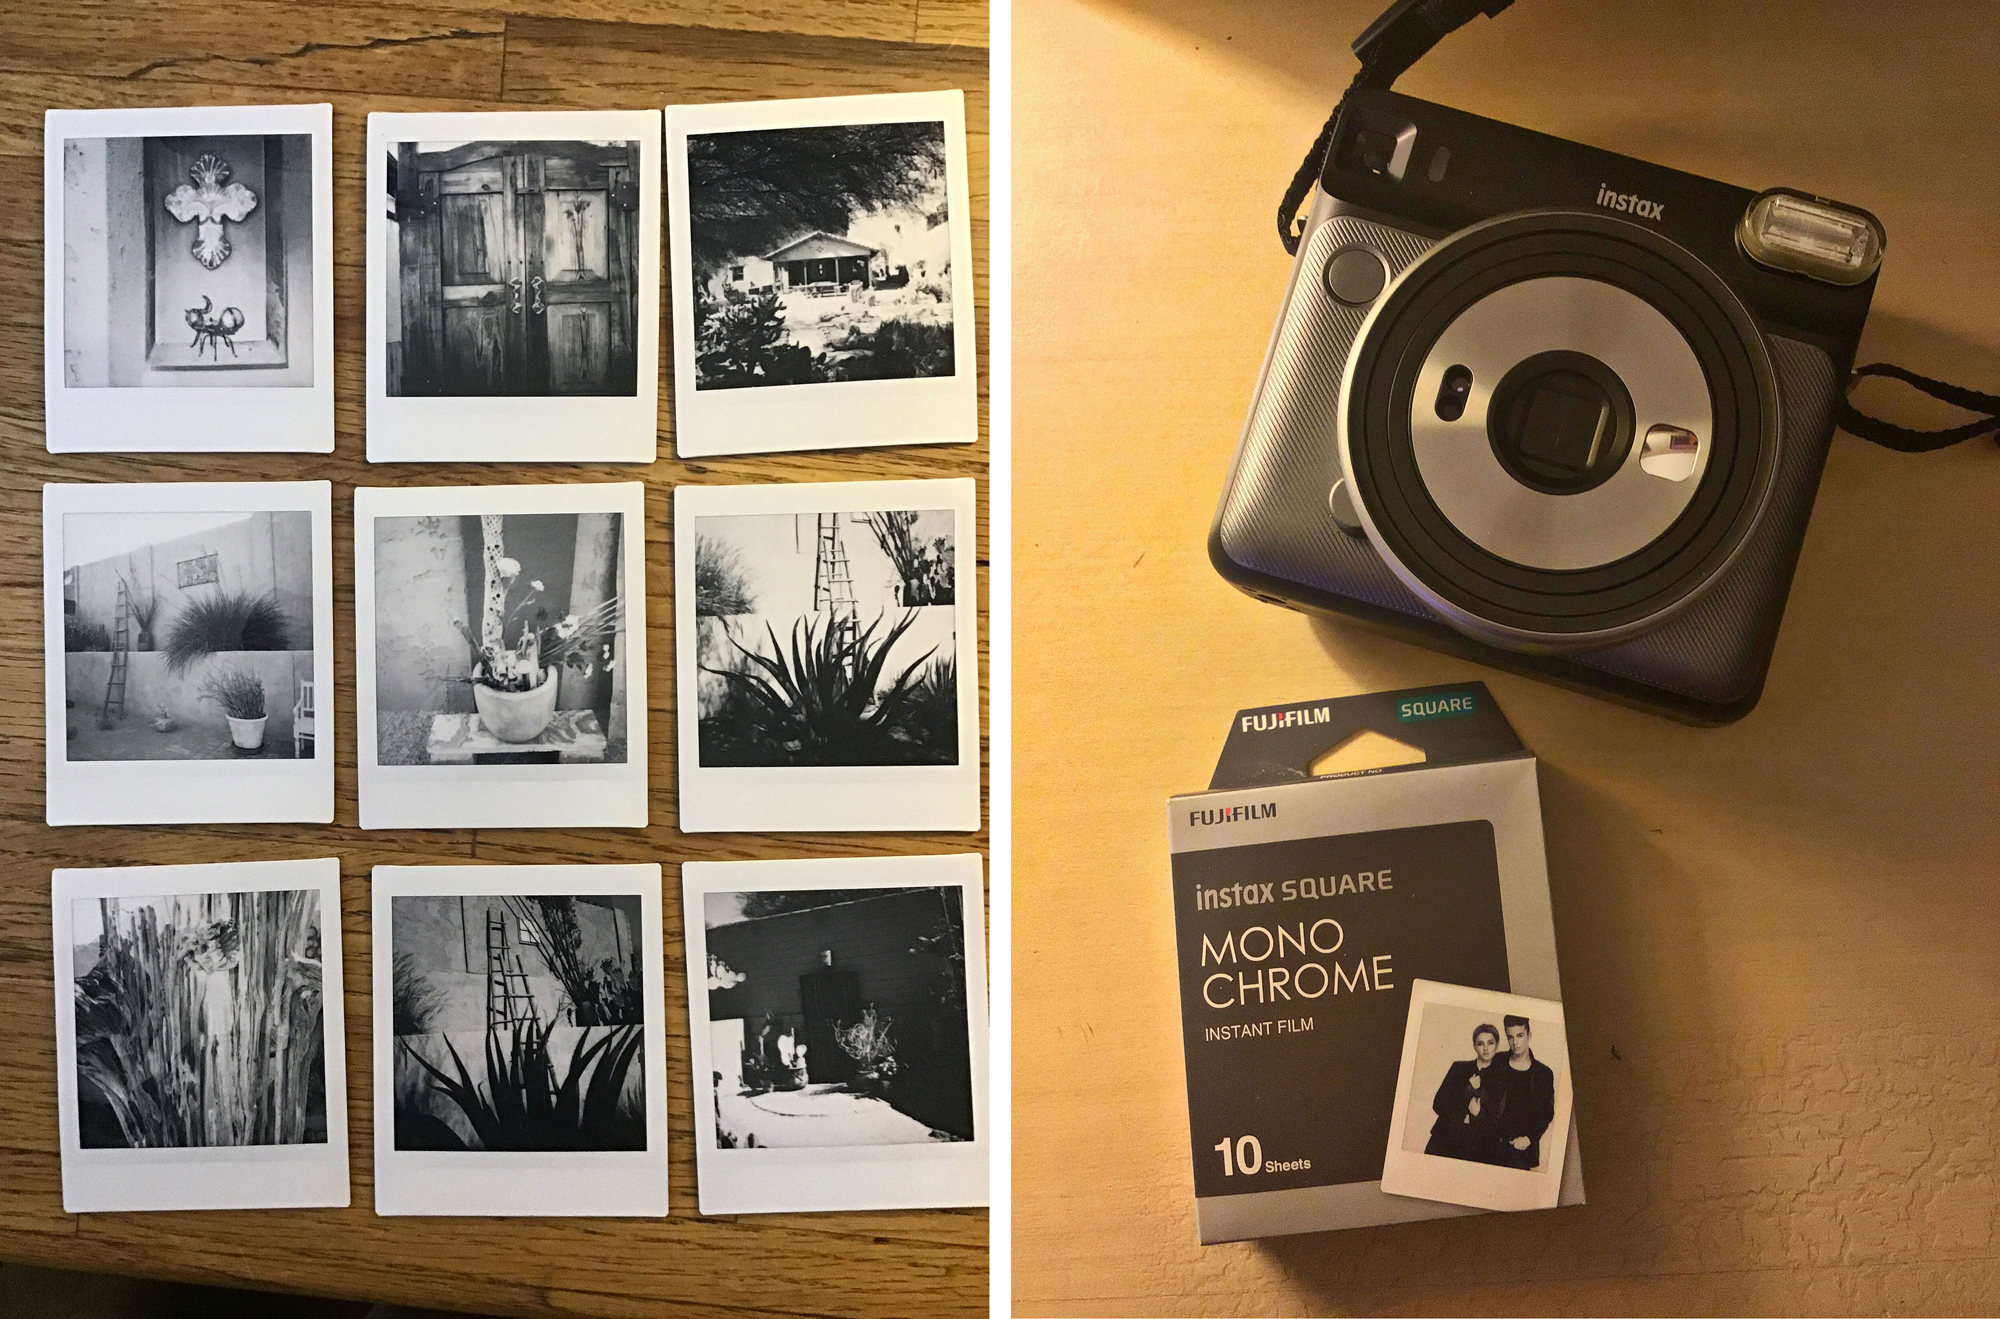 The Fuji Instax photographs I created and the Fuji Instax Square and Mono Chrome film together with A contemporary look but not quite the cachet of the SX 70